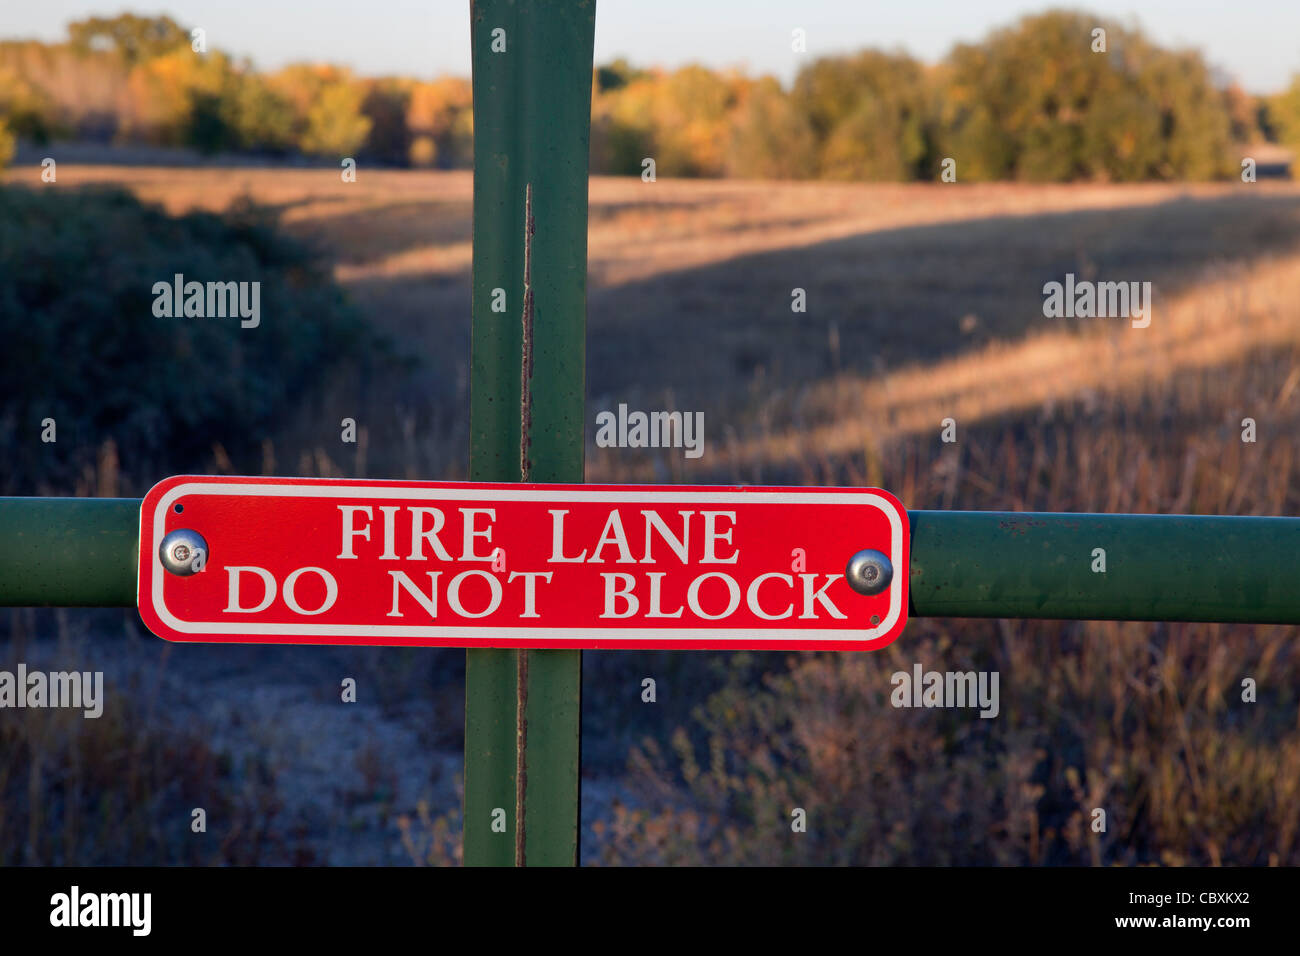 fire lane, do not block sign on a gate with a meadow and woods landscape behind - Stock Image